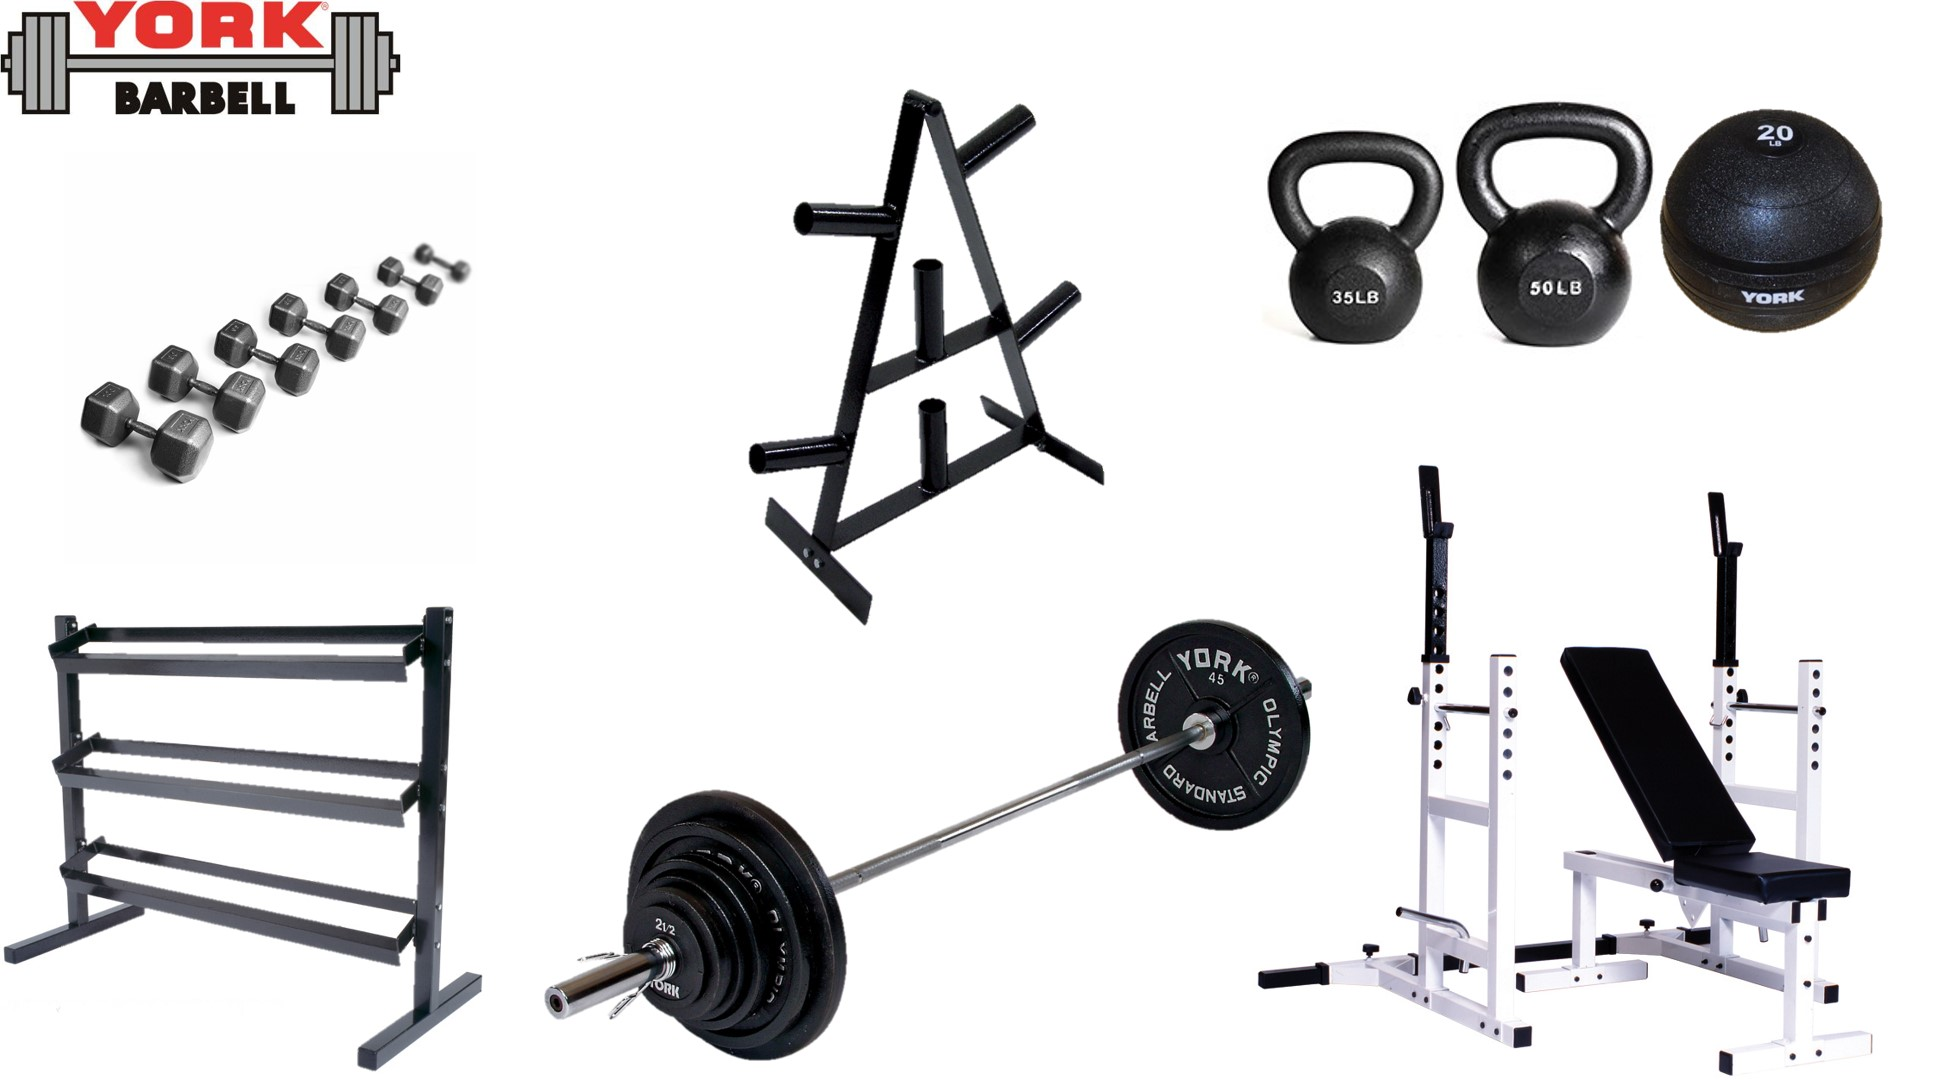 York Silver Package Gym Equipment Sets York Barbell